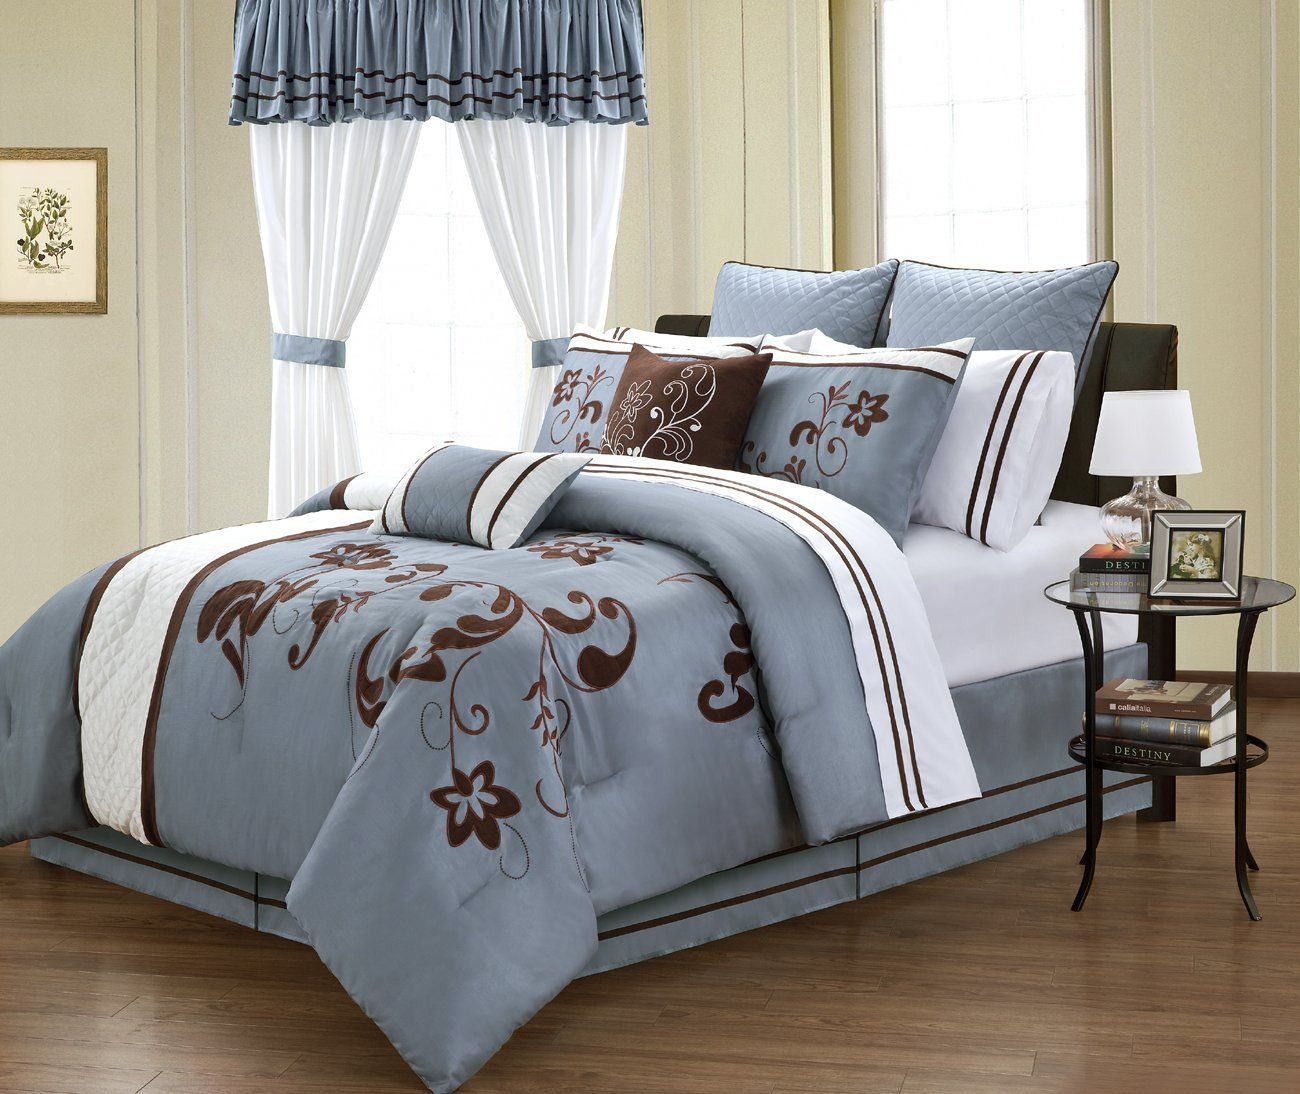 Bedding sets for women - 24 Pieces Blue And White With Brown Embroidery Floral Comforter Sheet Window Set Bed In A Bag King Size Bedding Ensemble